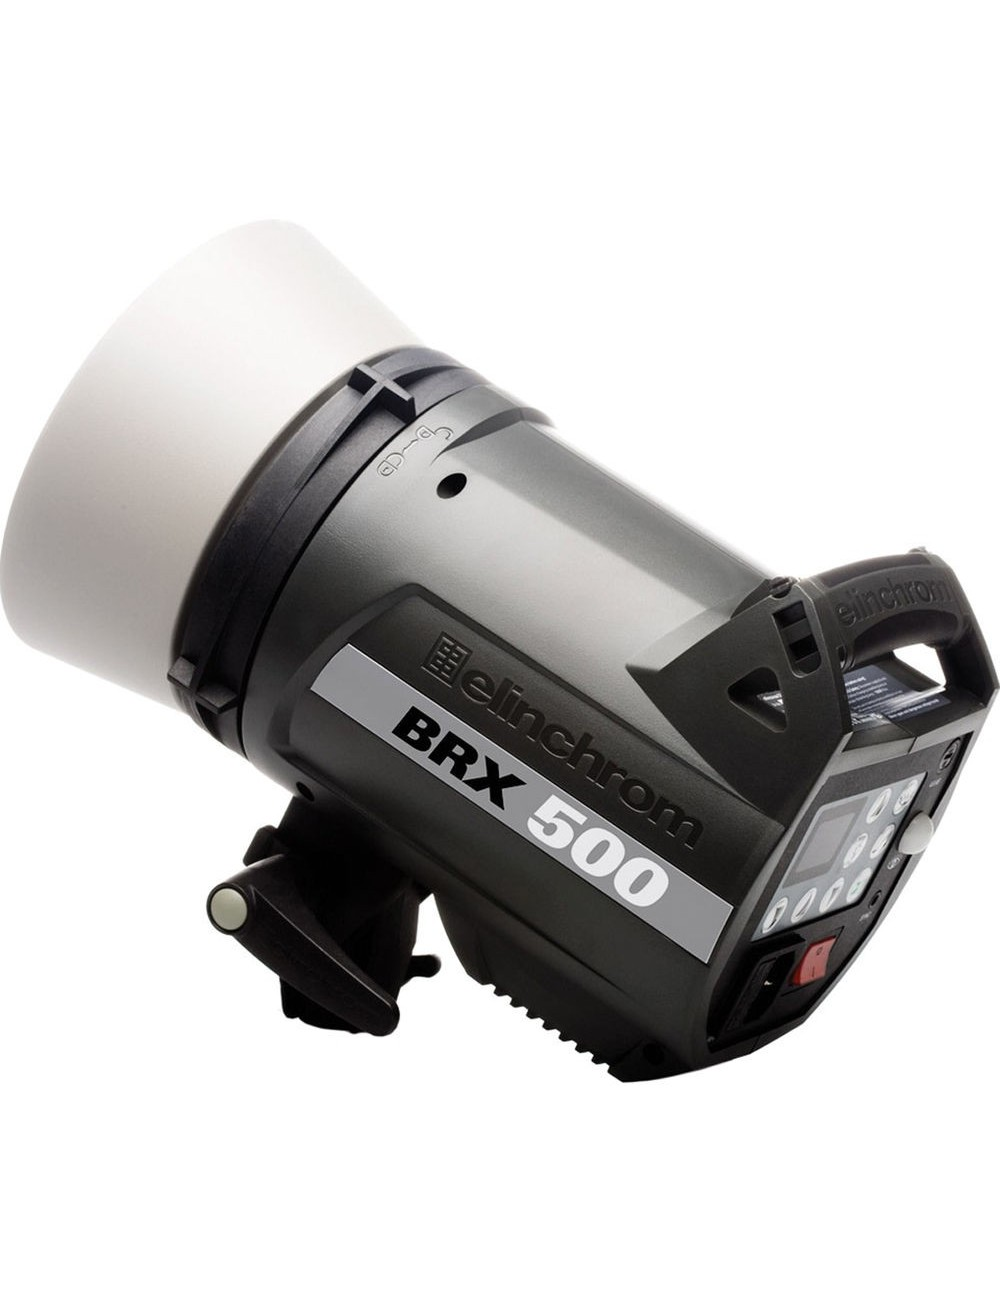 Flash Elinchrom BRX 500